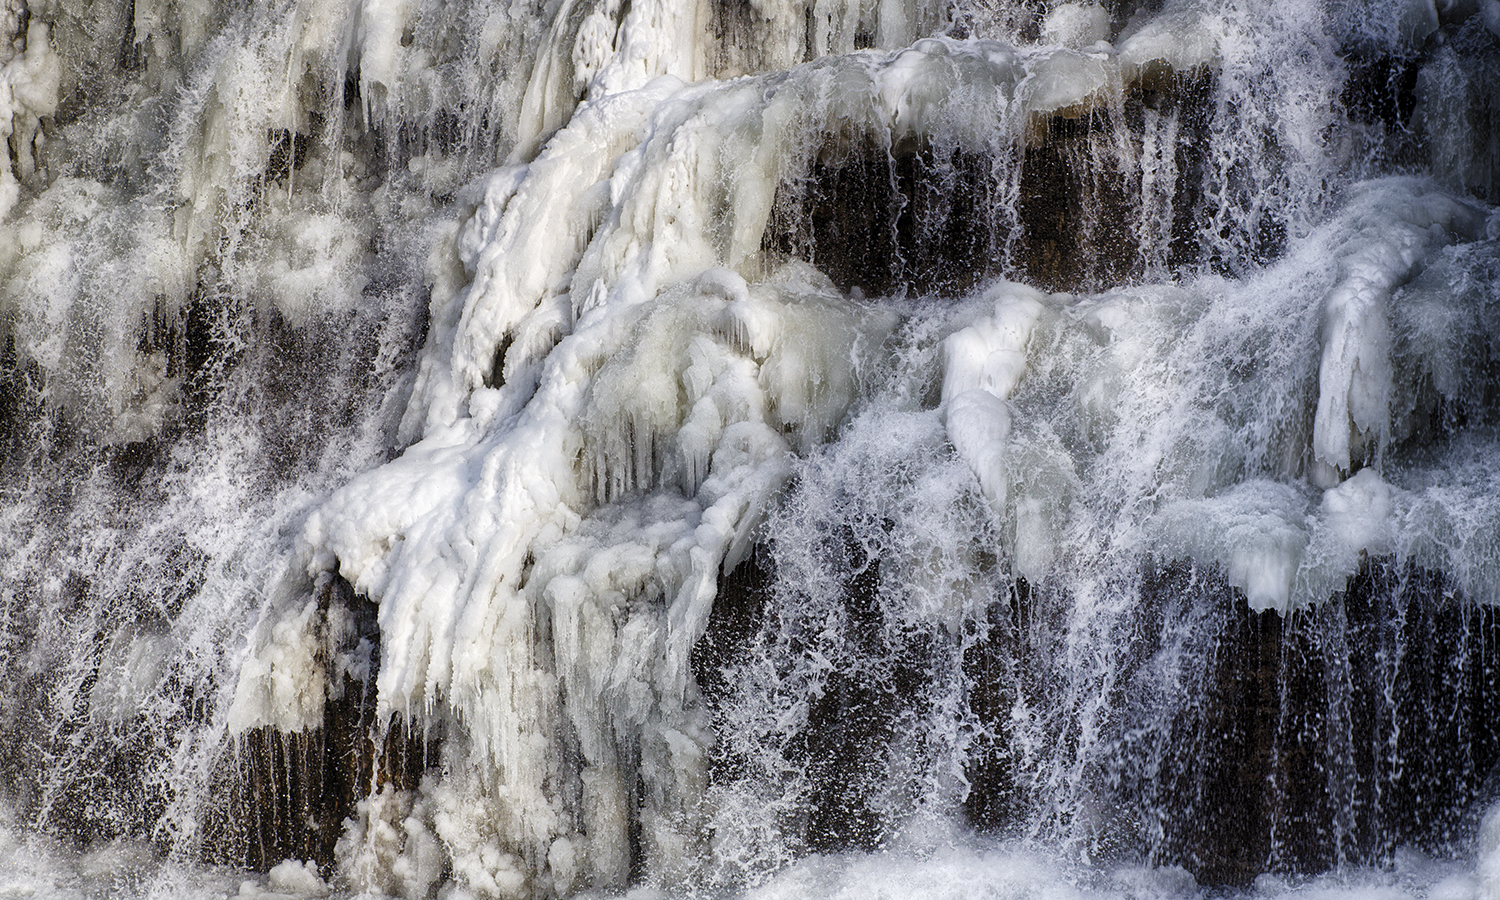 Ice forms on a waterfall near Watkins Glen.